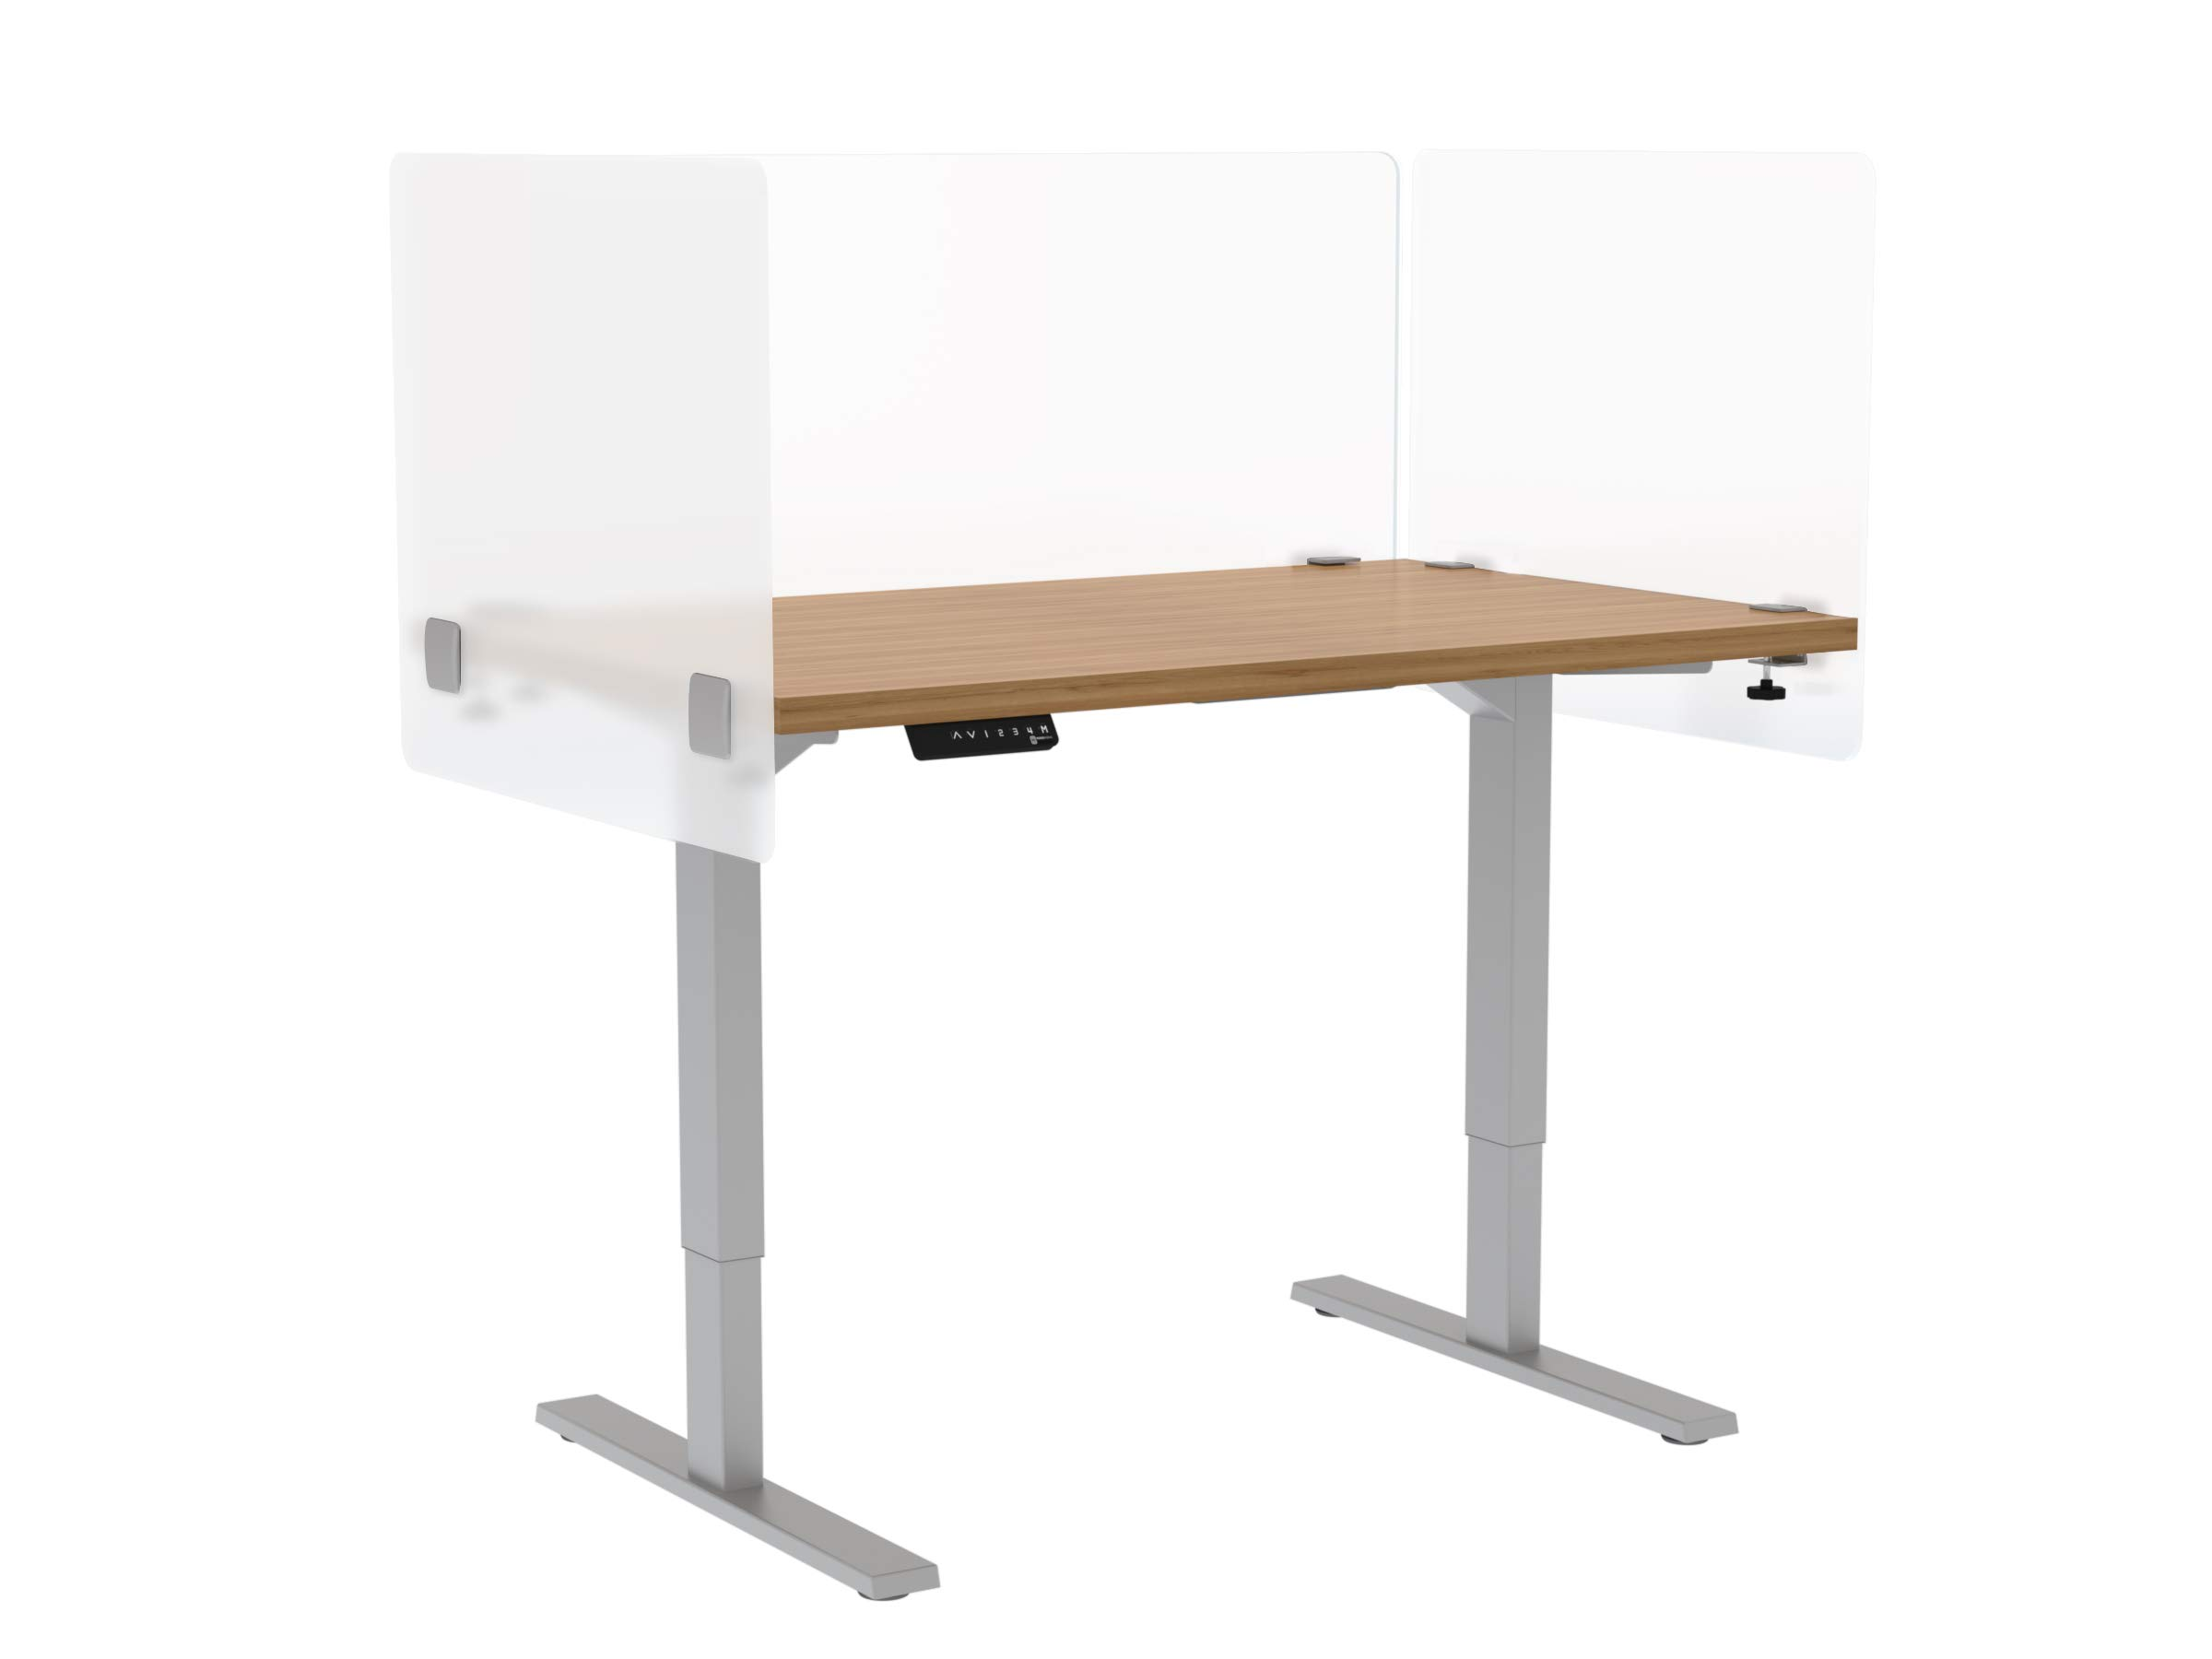 """VaRoom Privacy Partition, Frosted Acrylic Clamp-on Desk Divider – 30"""" W x 24""""H Privacy Desk Mounted Cubicle Panel by VaRoom (Image #3)"""